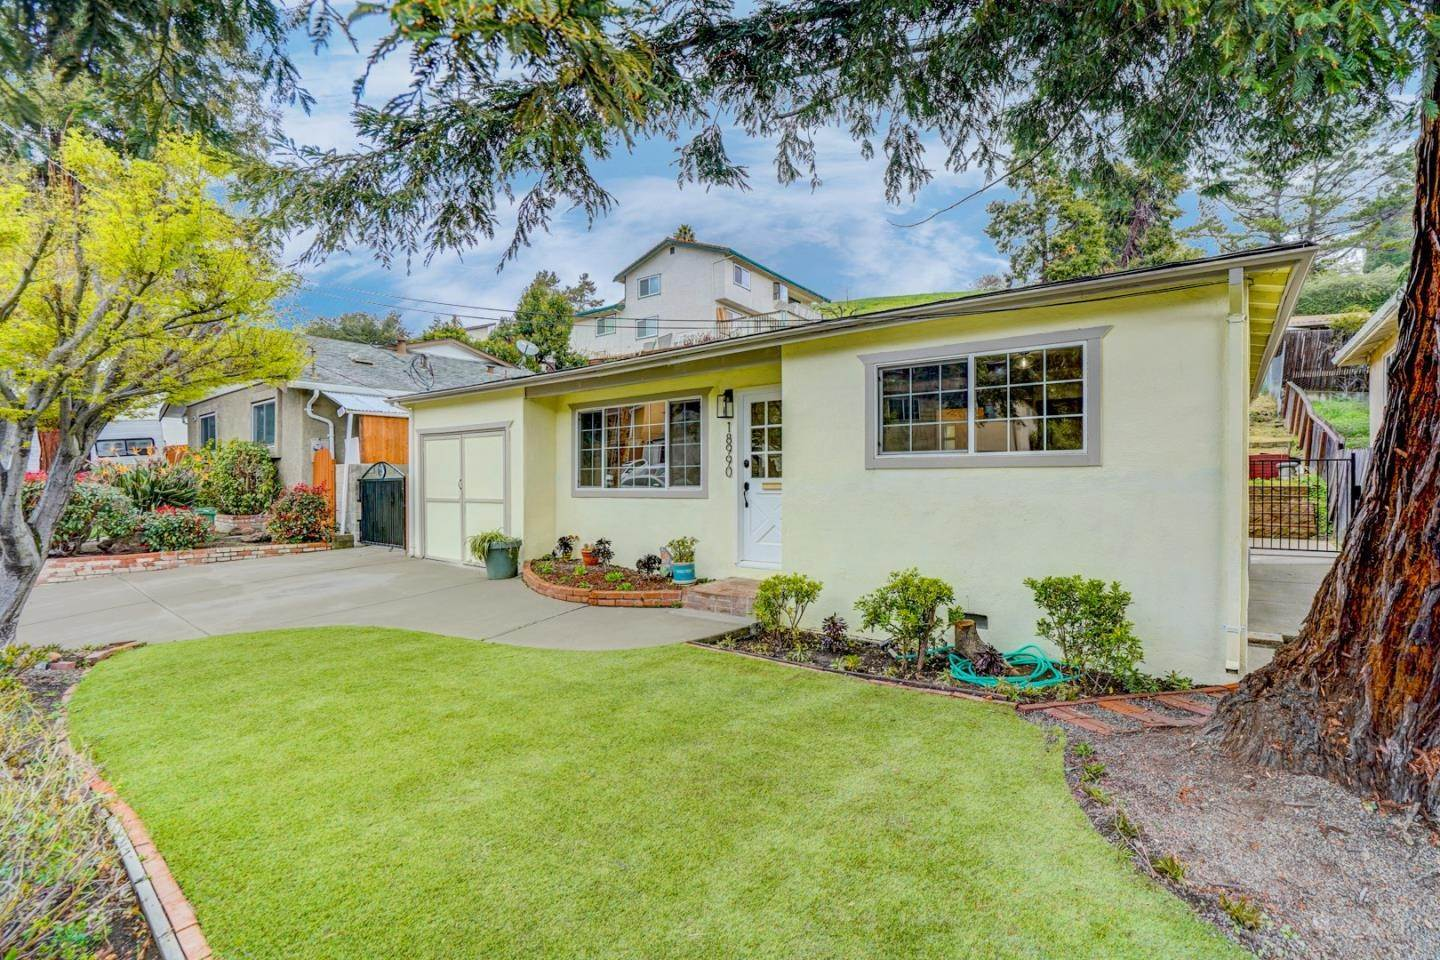 Residential for Sale at 18990 Stanton Avenue Castro Valley, California 94546 United States